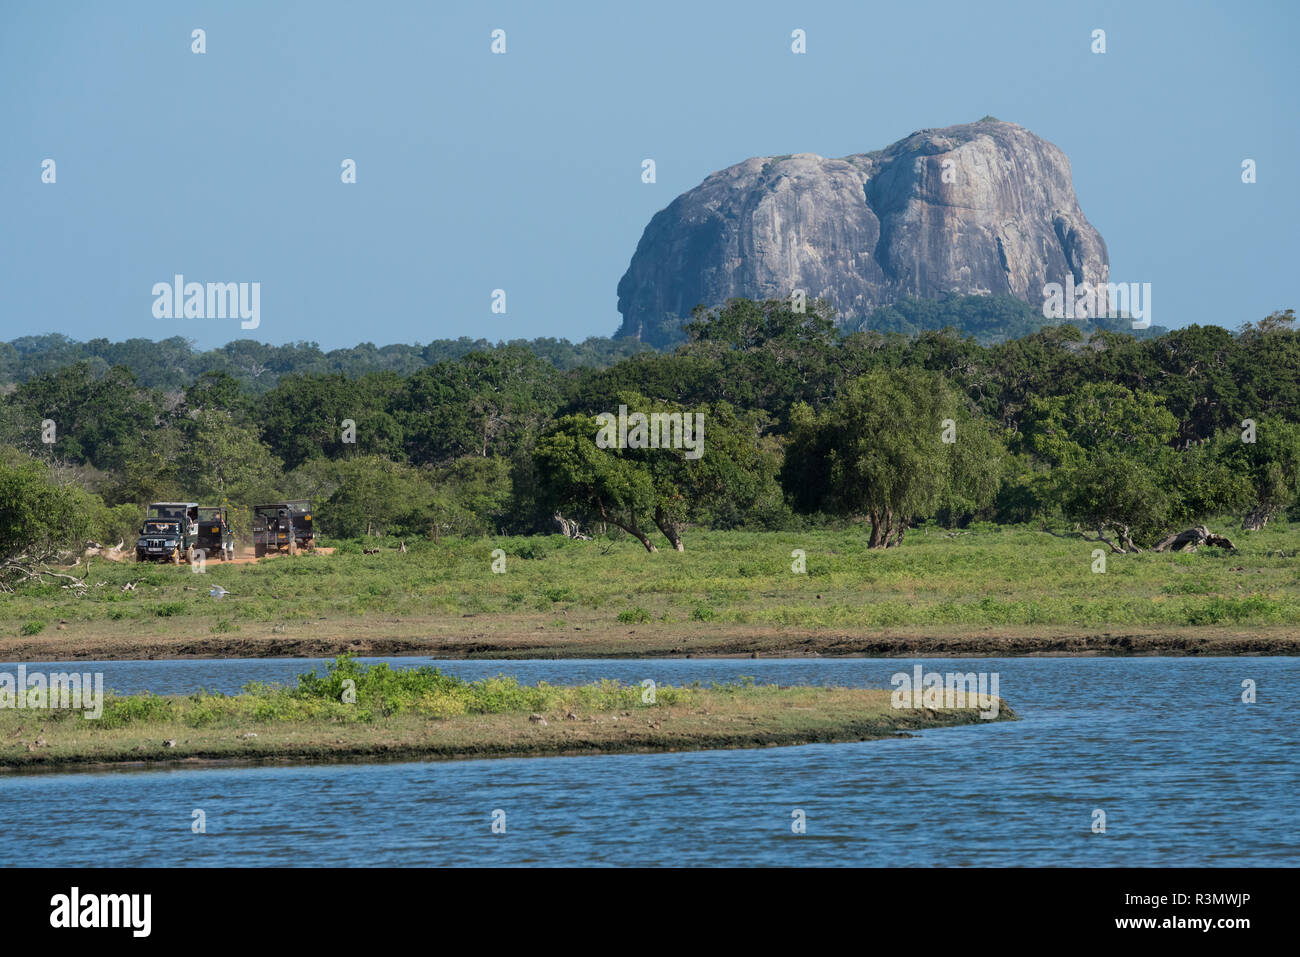 Sri Lanka, Yala National Park, aka Ruhuna National Park (block 1) est. in 1900. Scenic view of landmark Elephant Rock, game drive jeeps on road. - Stock Image